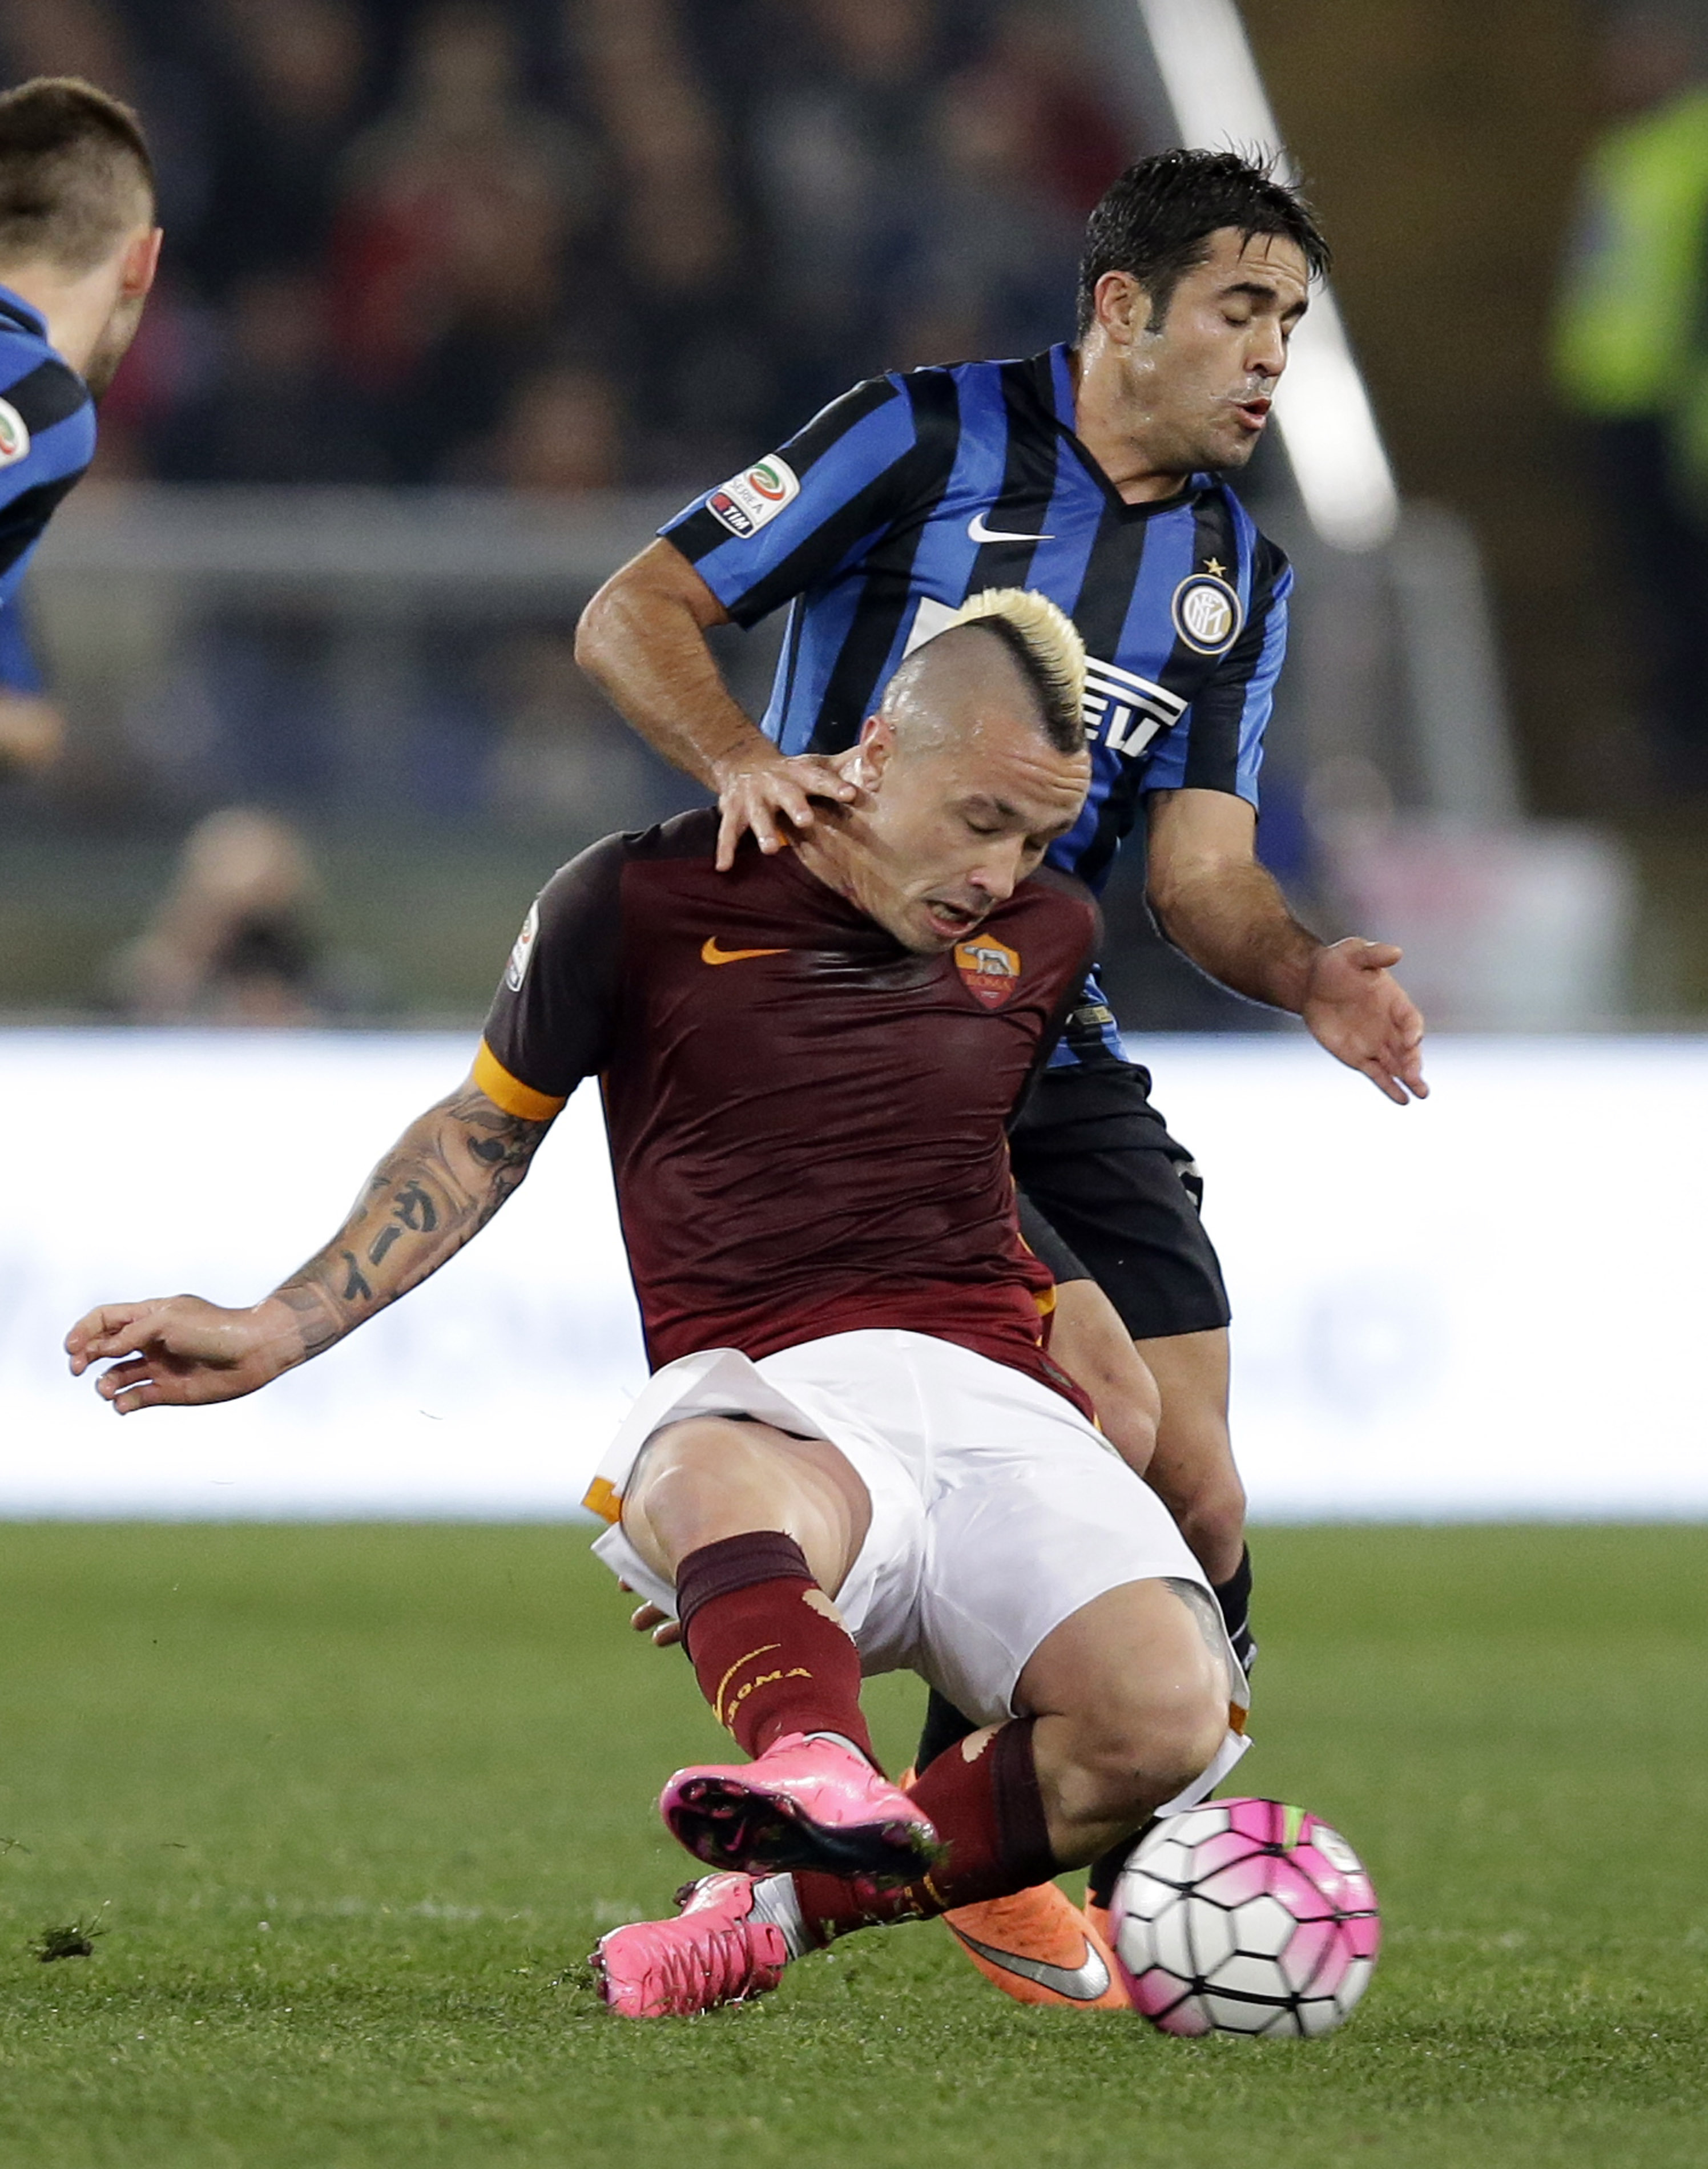 Chelsea Agree Deal With Roma For Radja Nainggolan SPORTbible